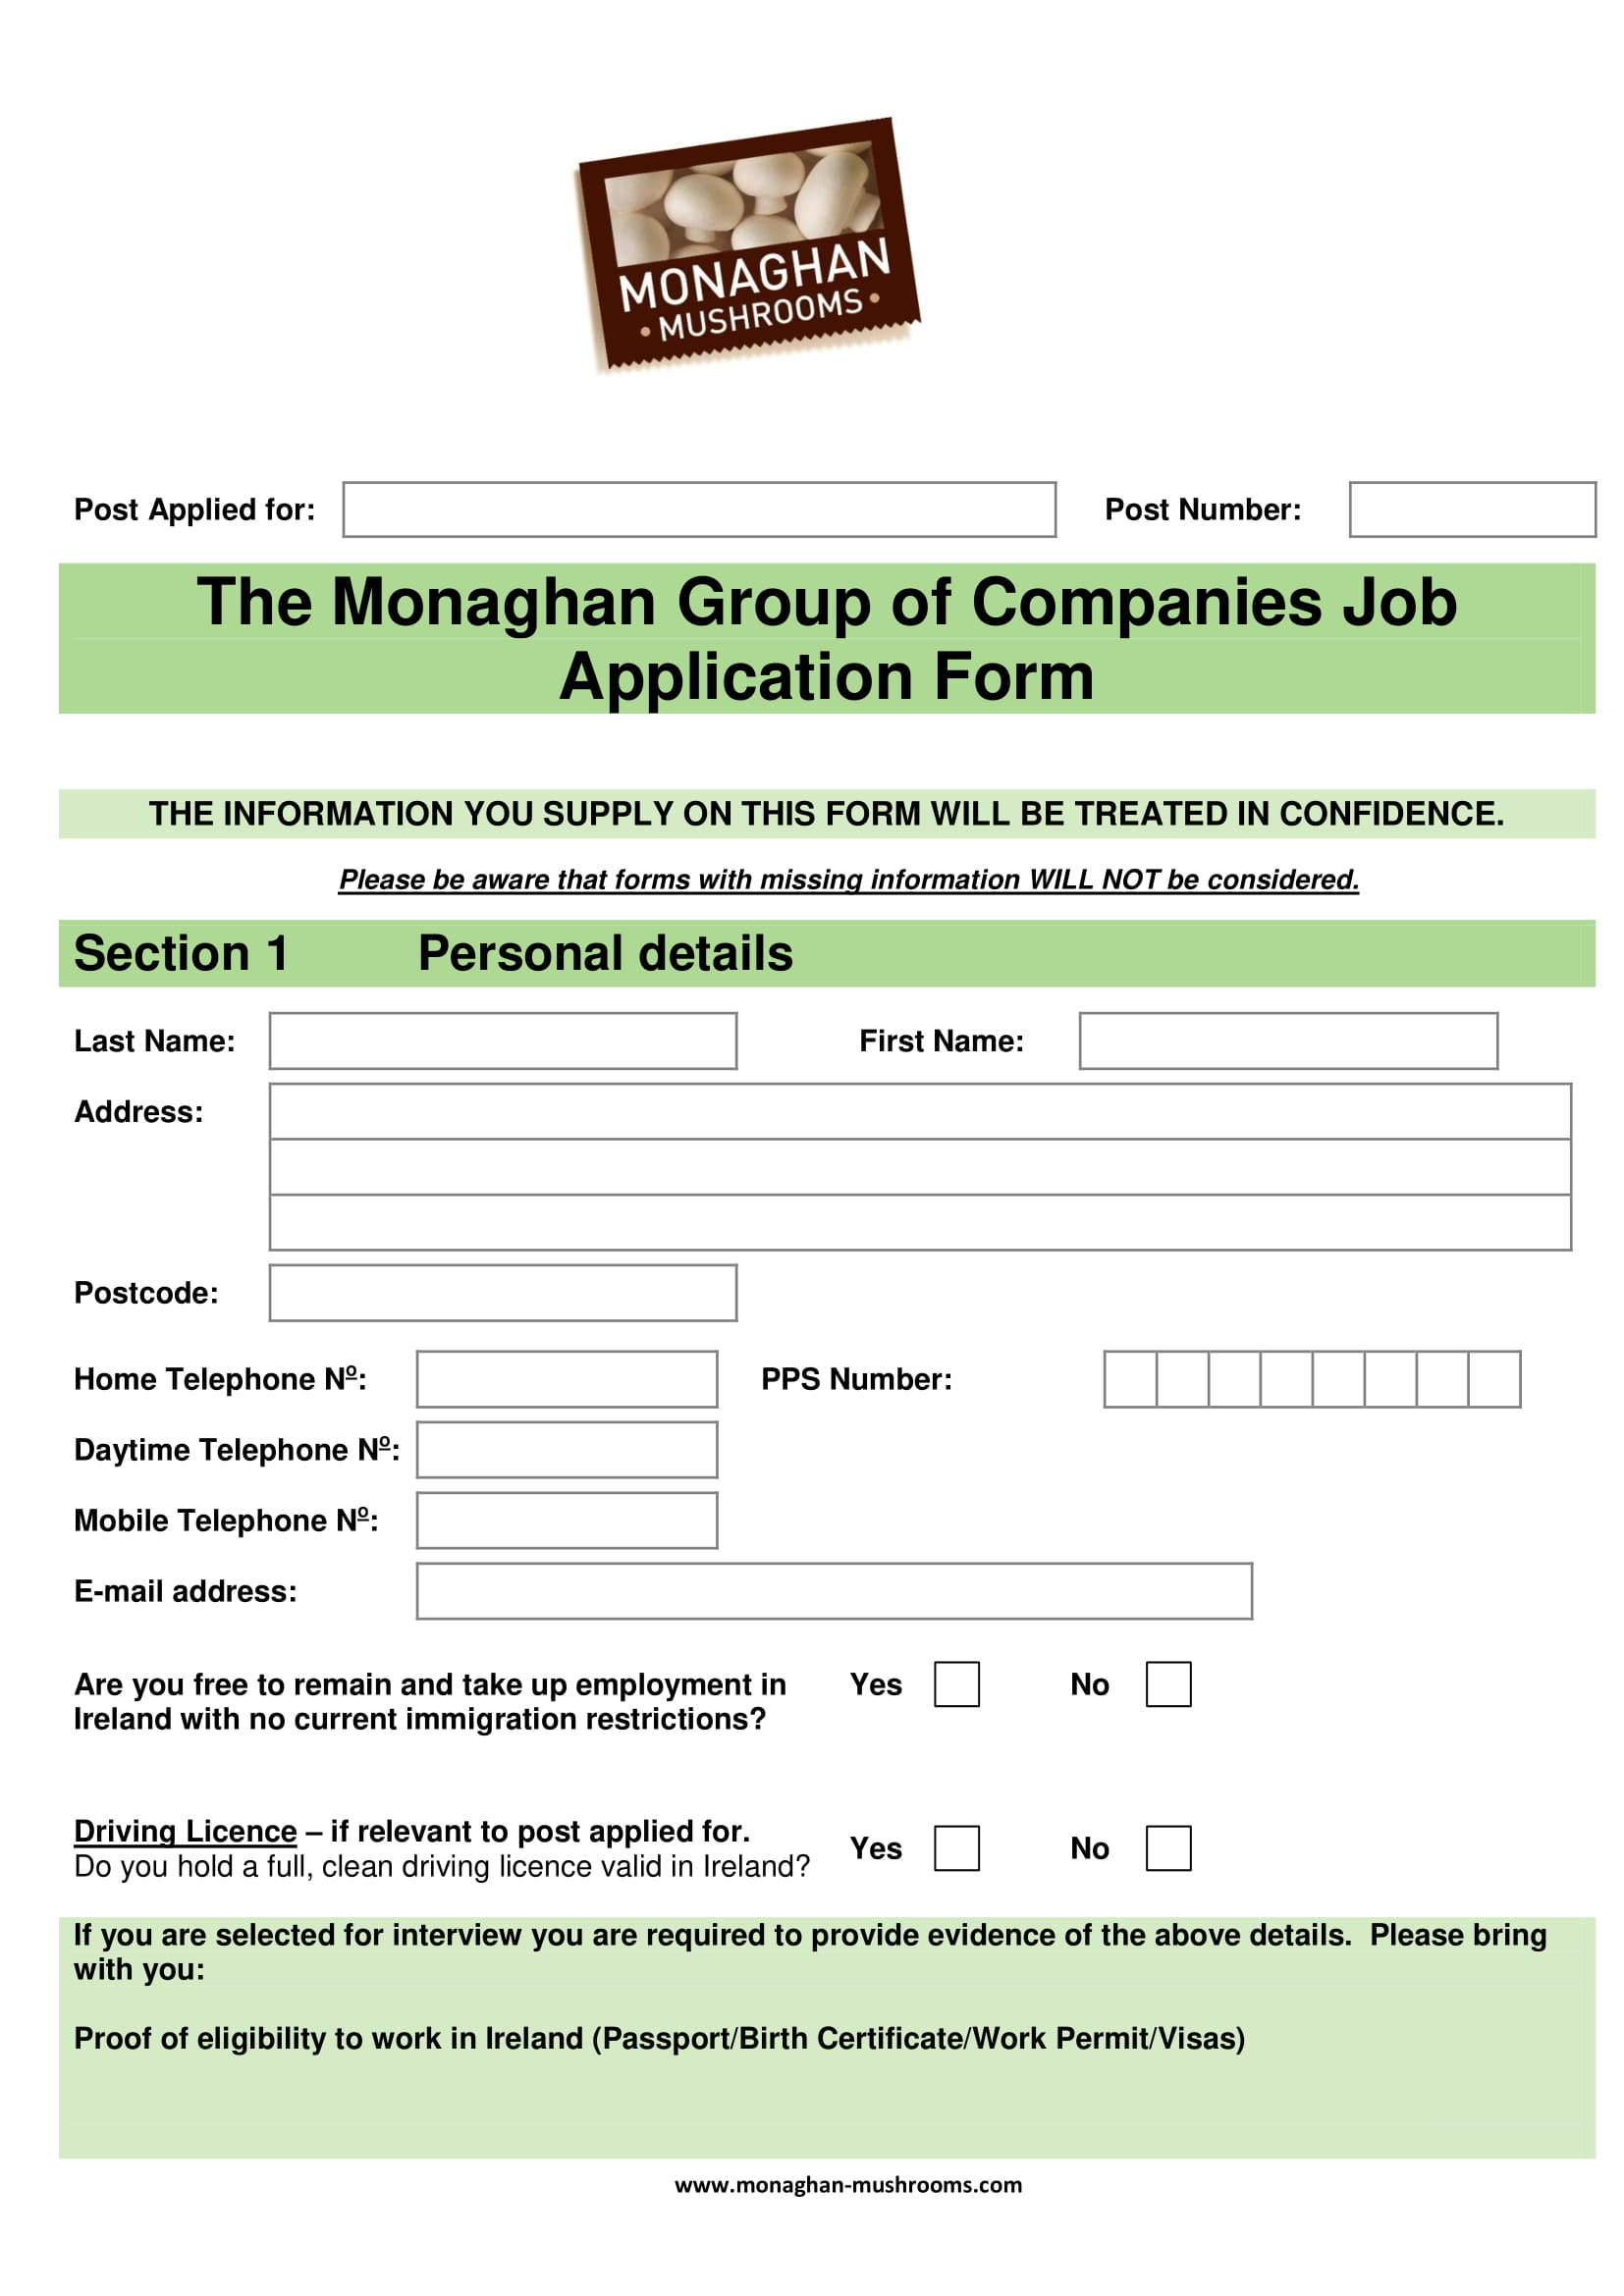 9+ Job Application Form Examples - PDF Application Form For Job Sample Pdf on employment application pdf, printable job applications pdf, sample blank job application form, format letter job application pdf, sample college scholarship application form, sample registration form pdf, job application template pdf,